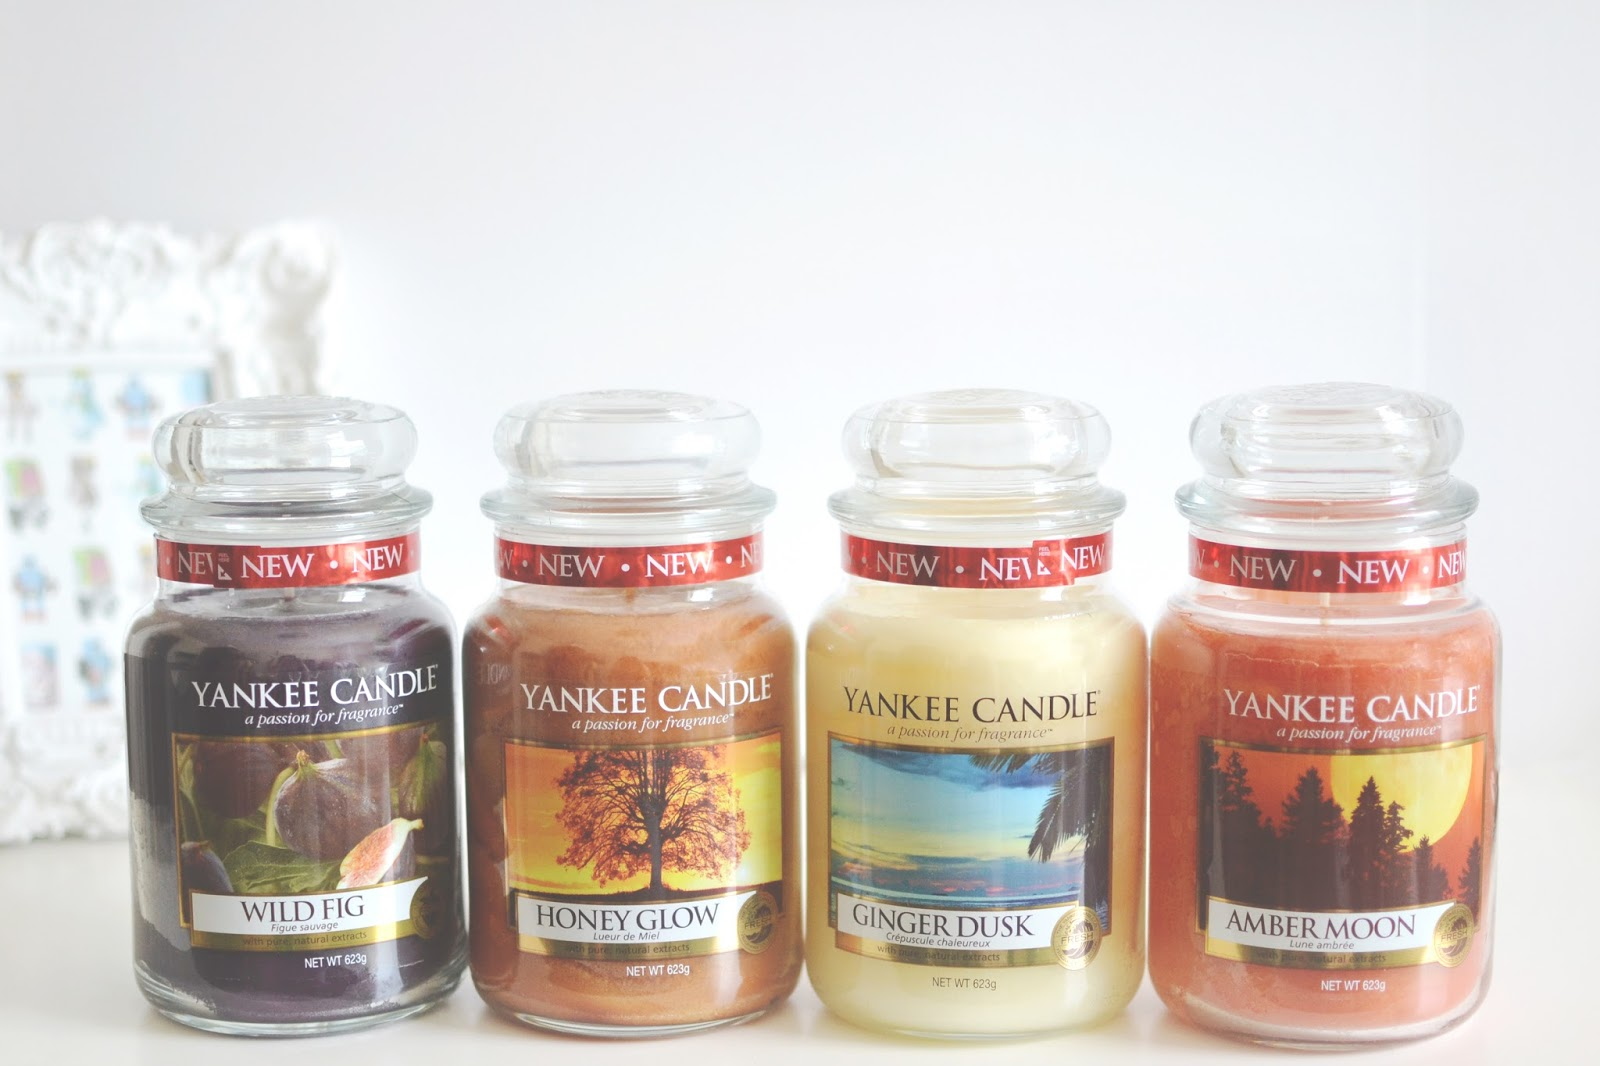 yankee candle indian summer collection, new candles from yankee candles